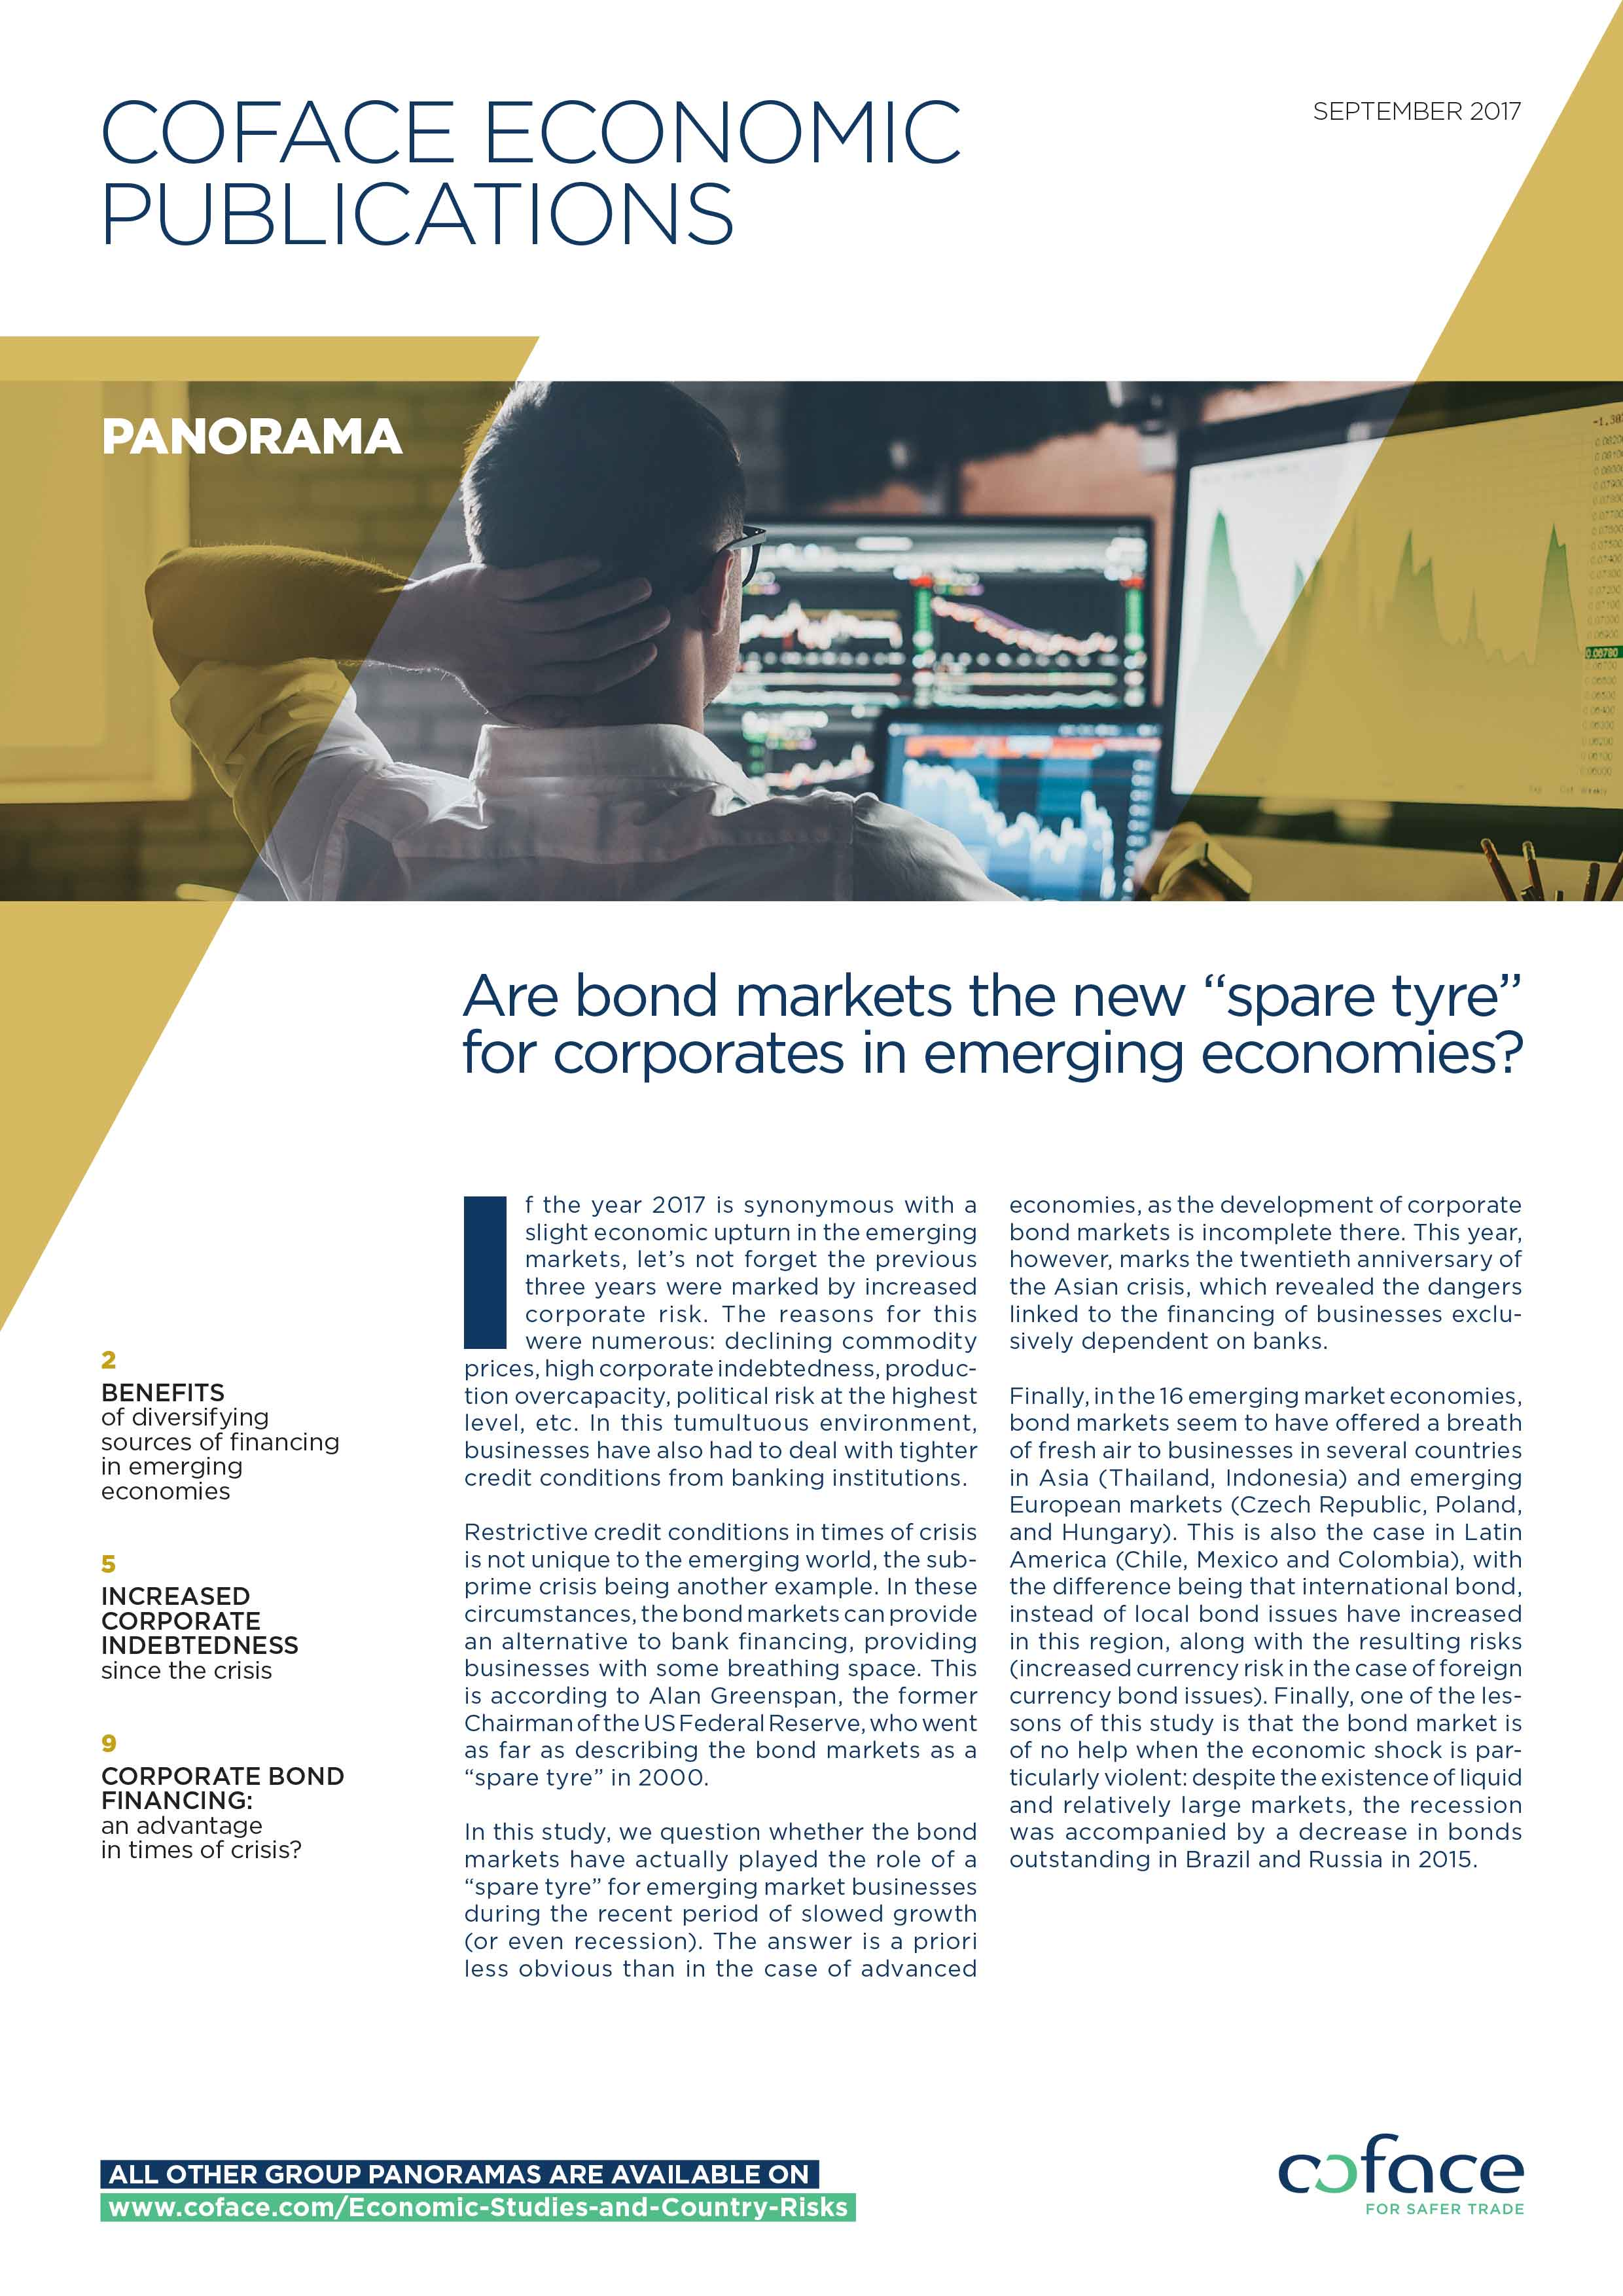 """Are bond markets the new """"spare tyre"""" for corporates in emerging economies?"""